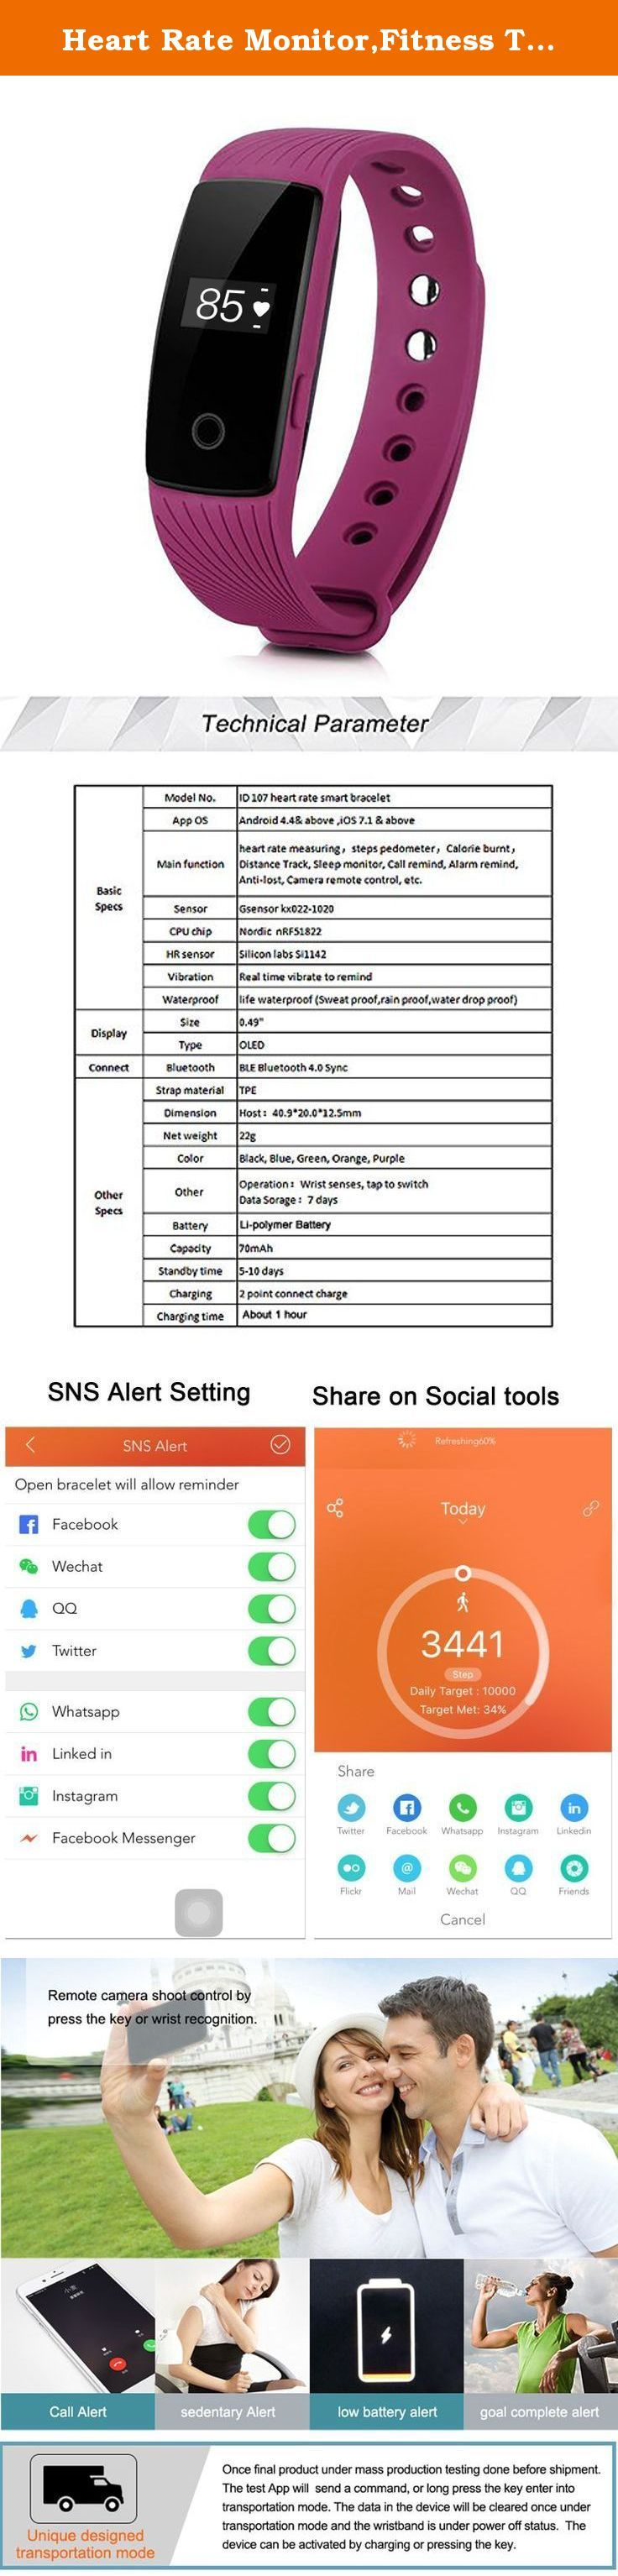 Heart Rate Monitor,Fitness Tracker Pedometers Sleep Monitor Activity Tracker for Android IOS Smartphone Bluetooth 4.0 (Purple). About pairing device: If you can not find device, please make sure the Bluetooth is ON and smart phone OS Android 4.3 & above and IOS 7.1 & above About heart rate: If it is not accurate, please check if there is a gap between the watch and the arm. If you have any questions, please contact us by email, we will definitely help you to solve. Specifications: Product...